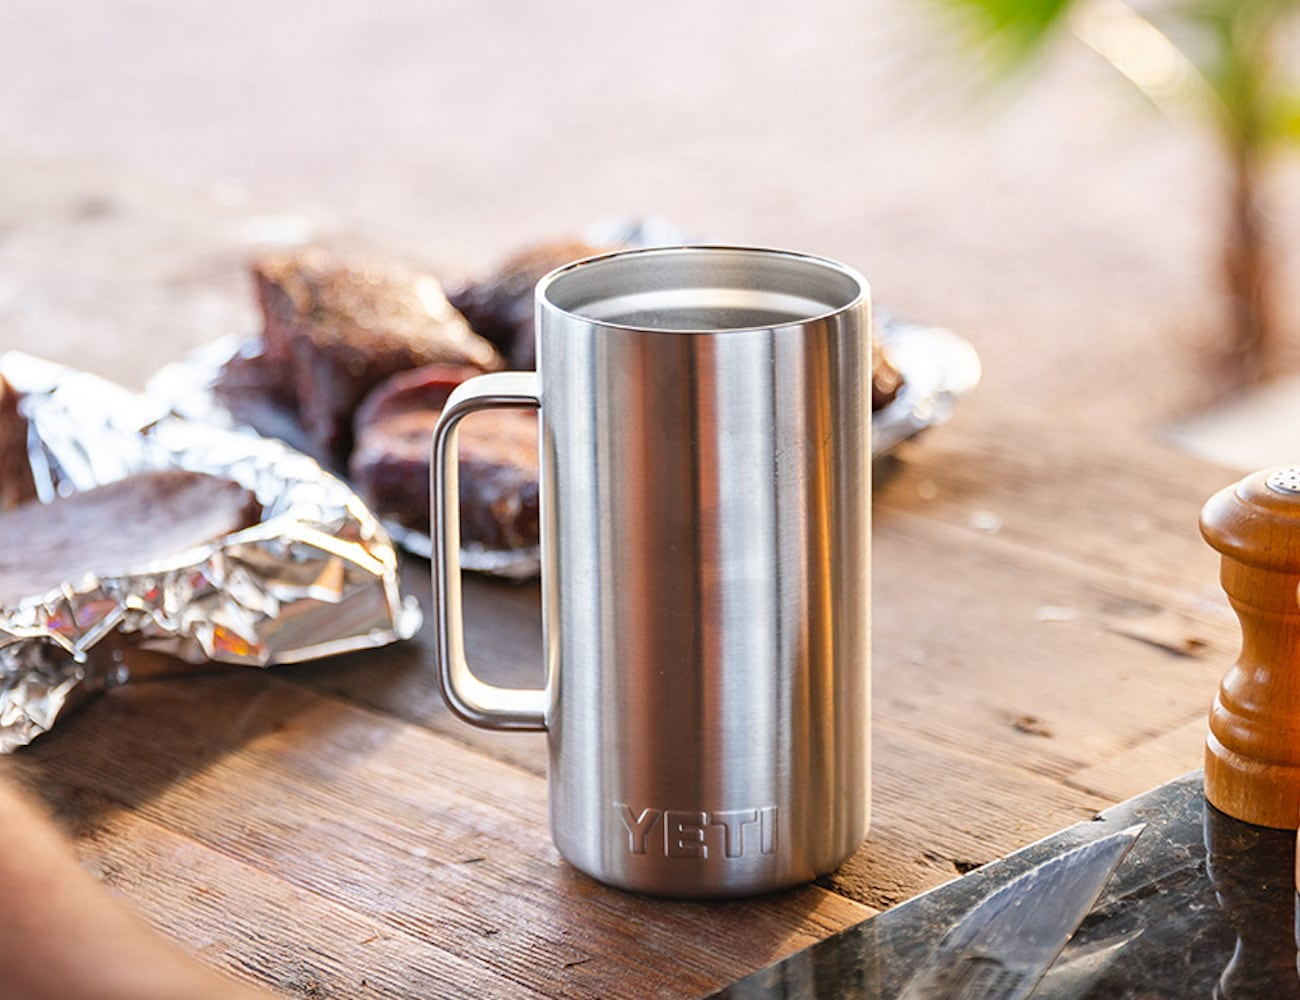 81c4bbe9a21 YETI Rambler 24 oz Beer Mug keeps your beverages nice and frosty